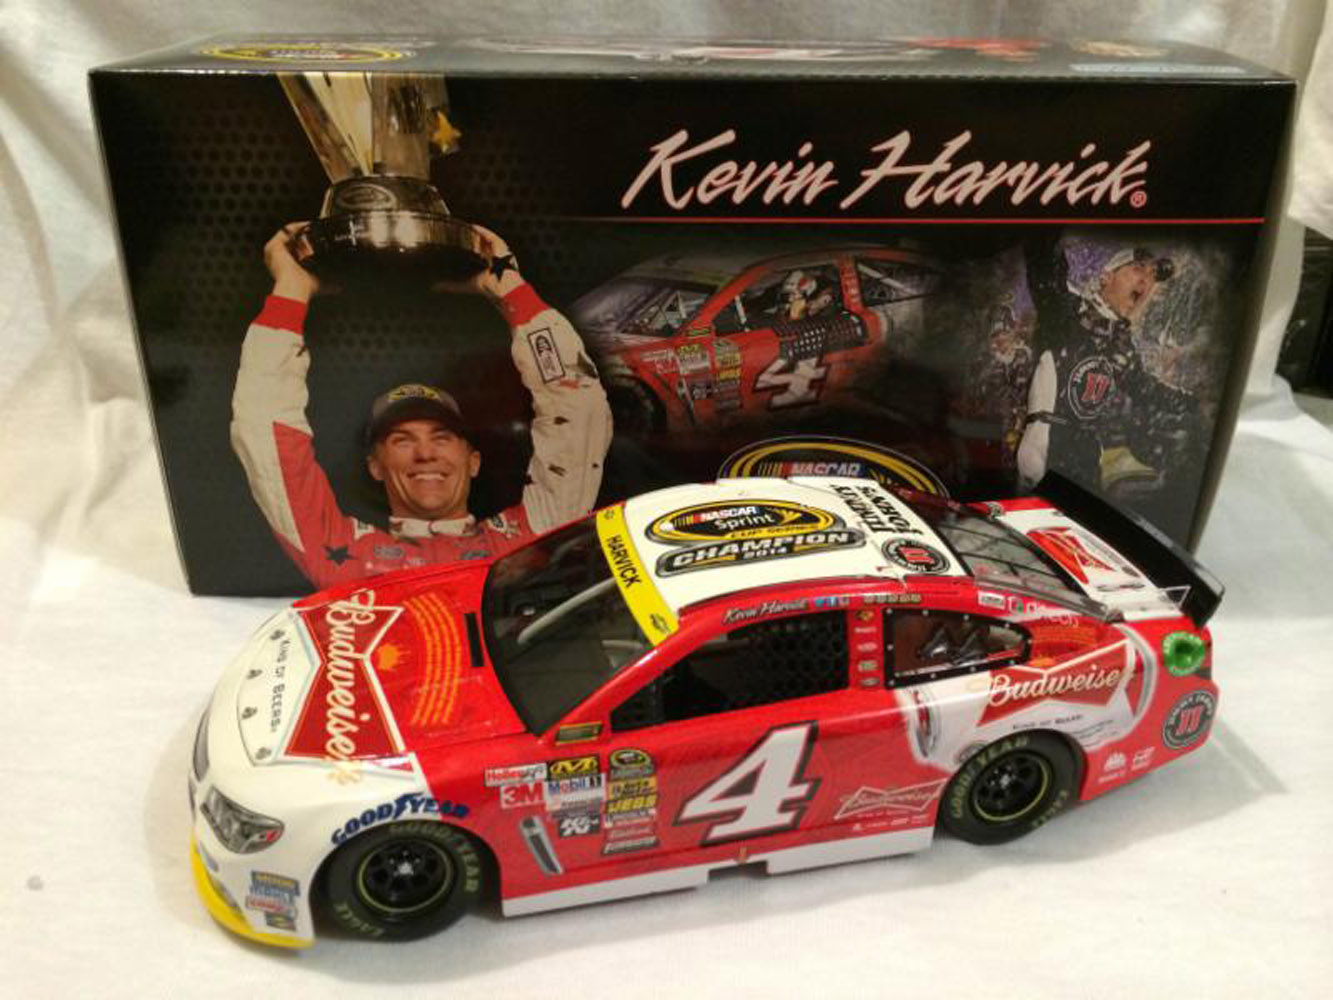 2014 Kevin Harvick #4 Budweiser Sprint Cup Champ 1:24 Diecast Car